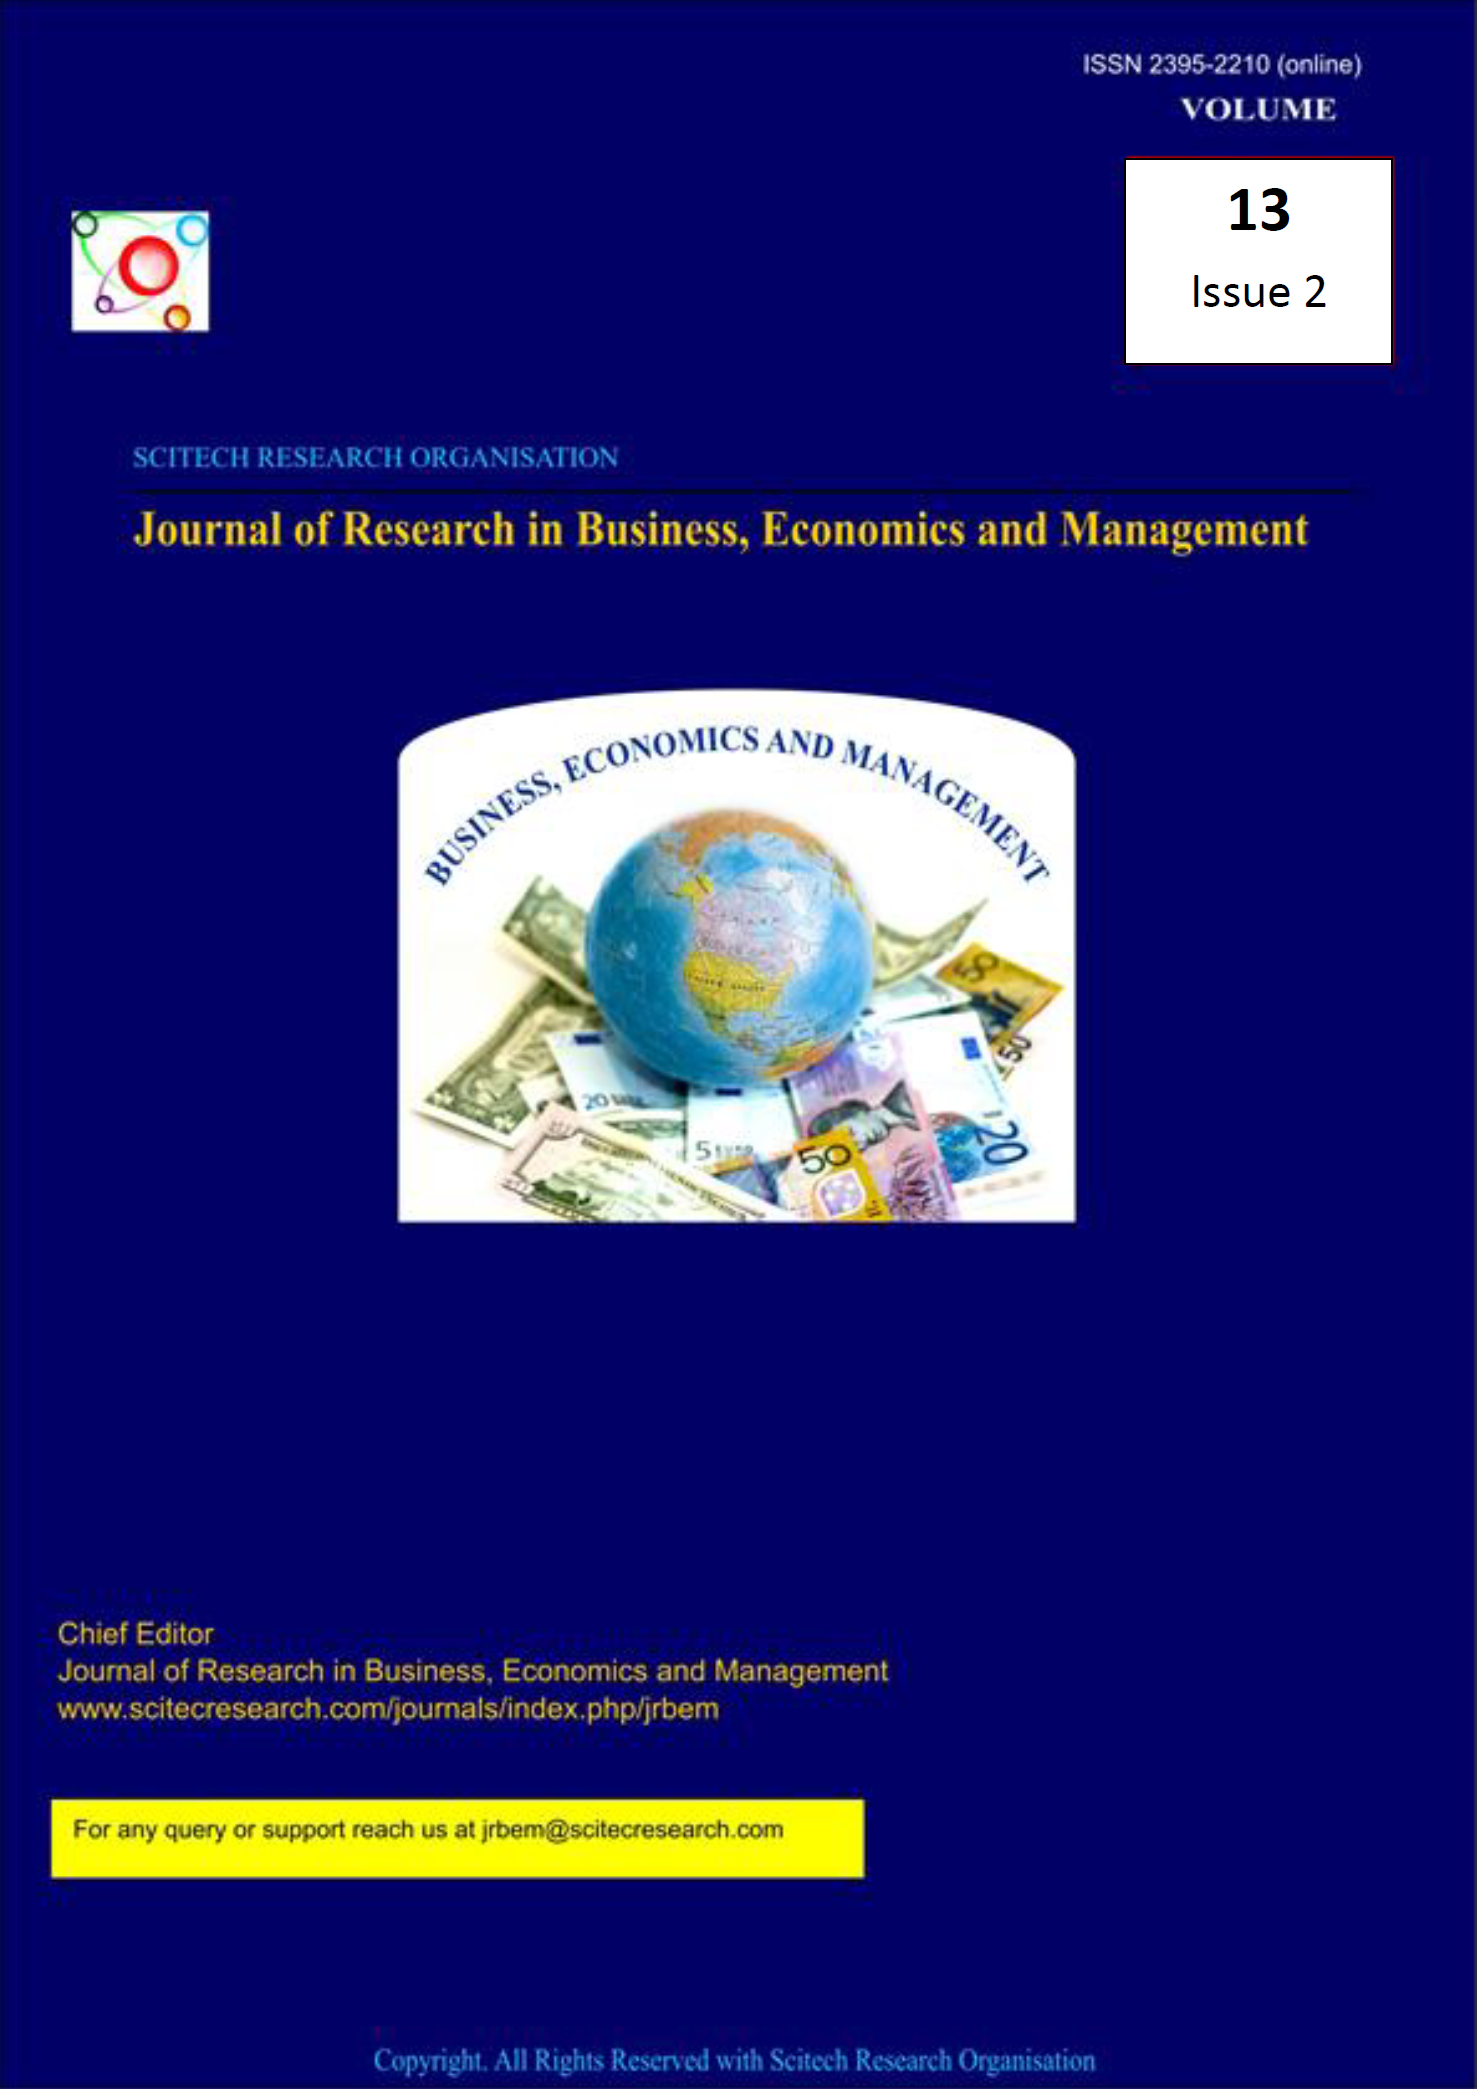 Journal of Research in Business, Economics and Management